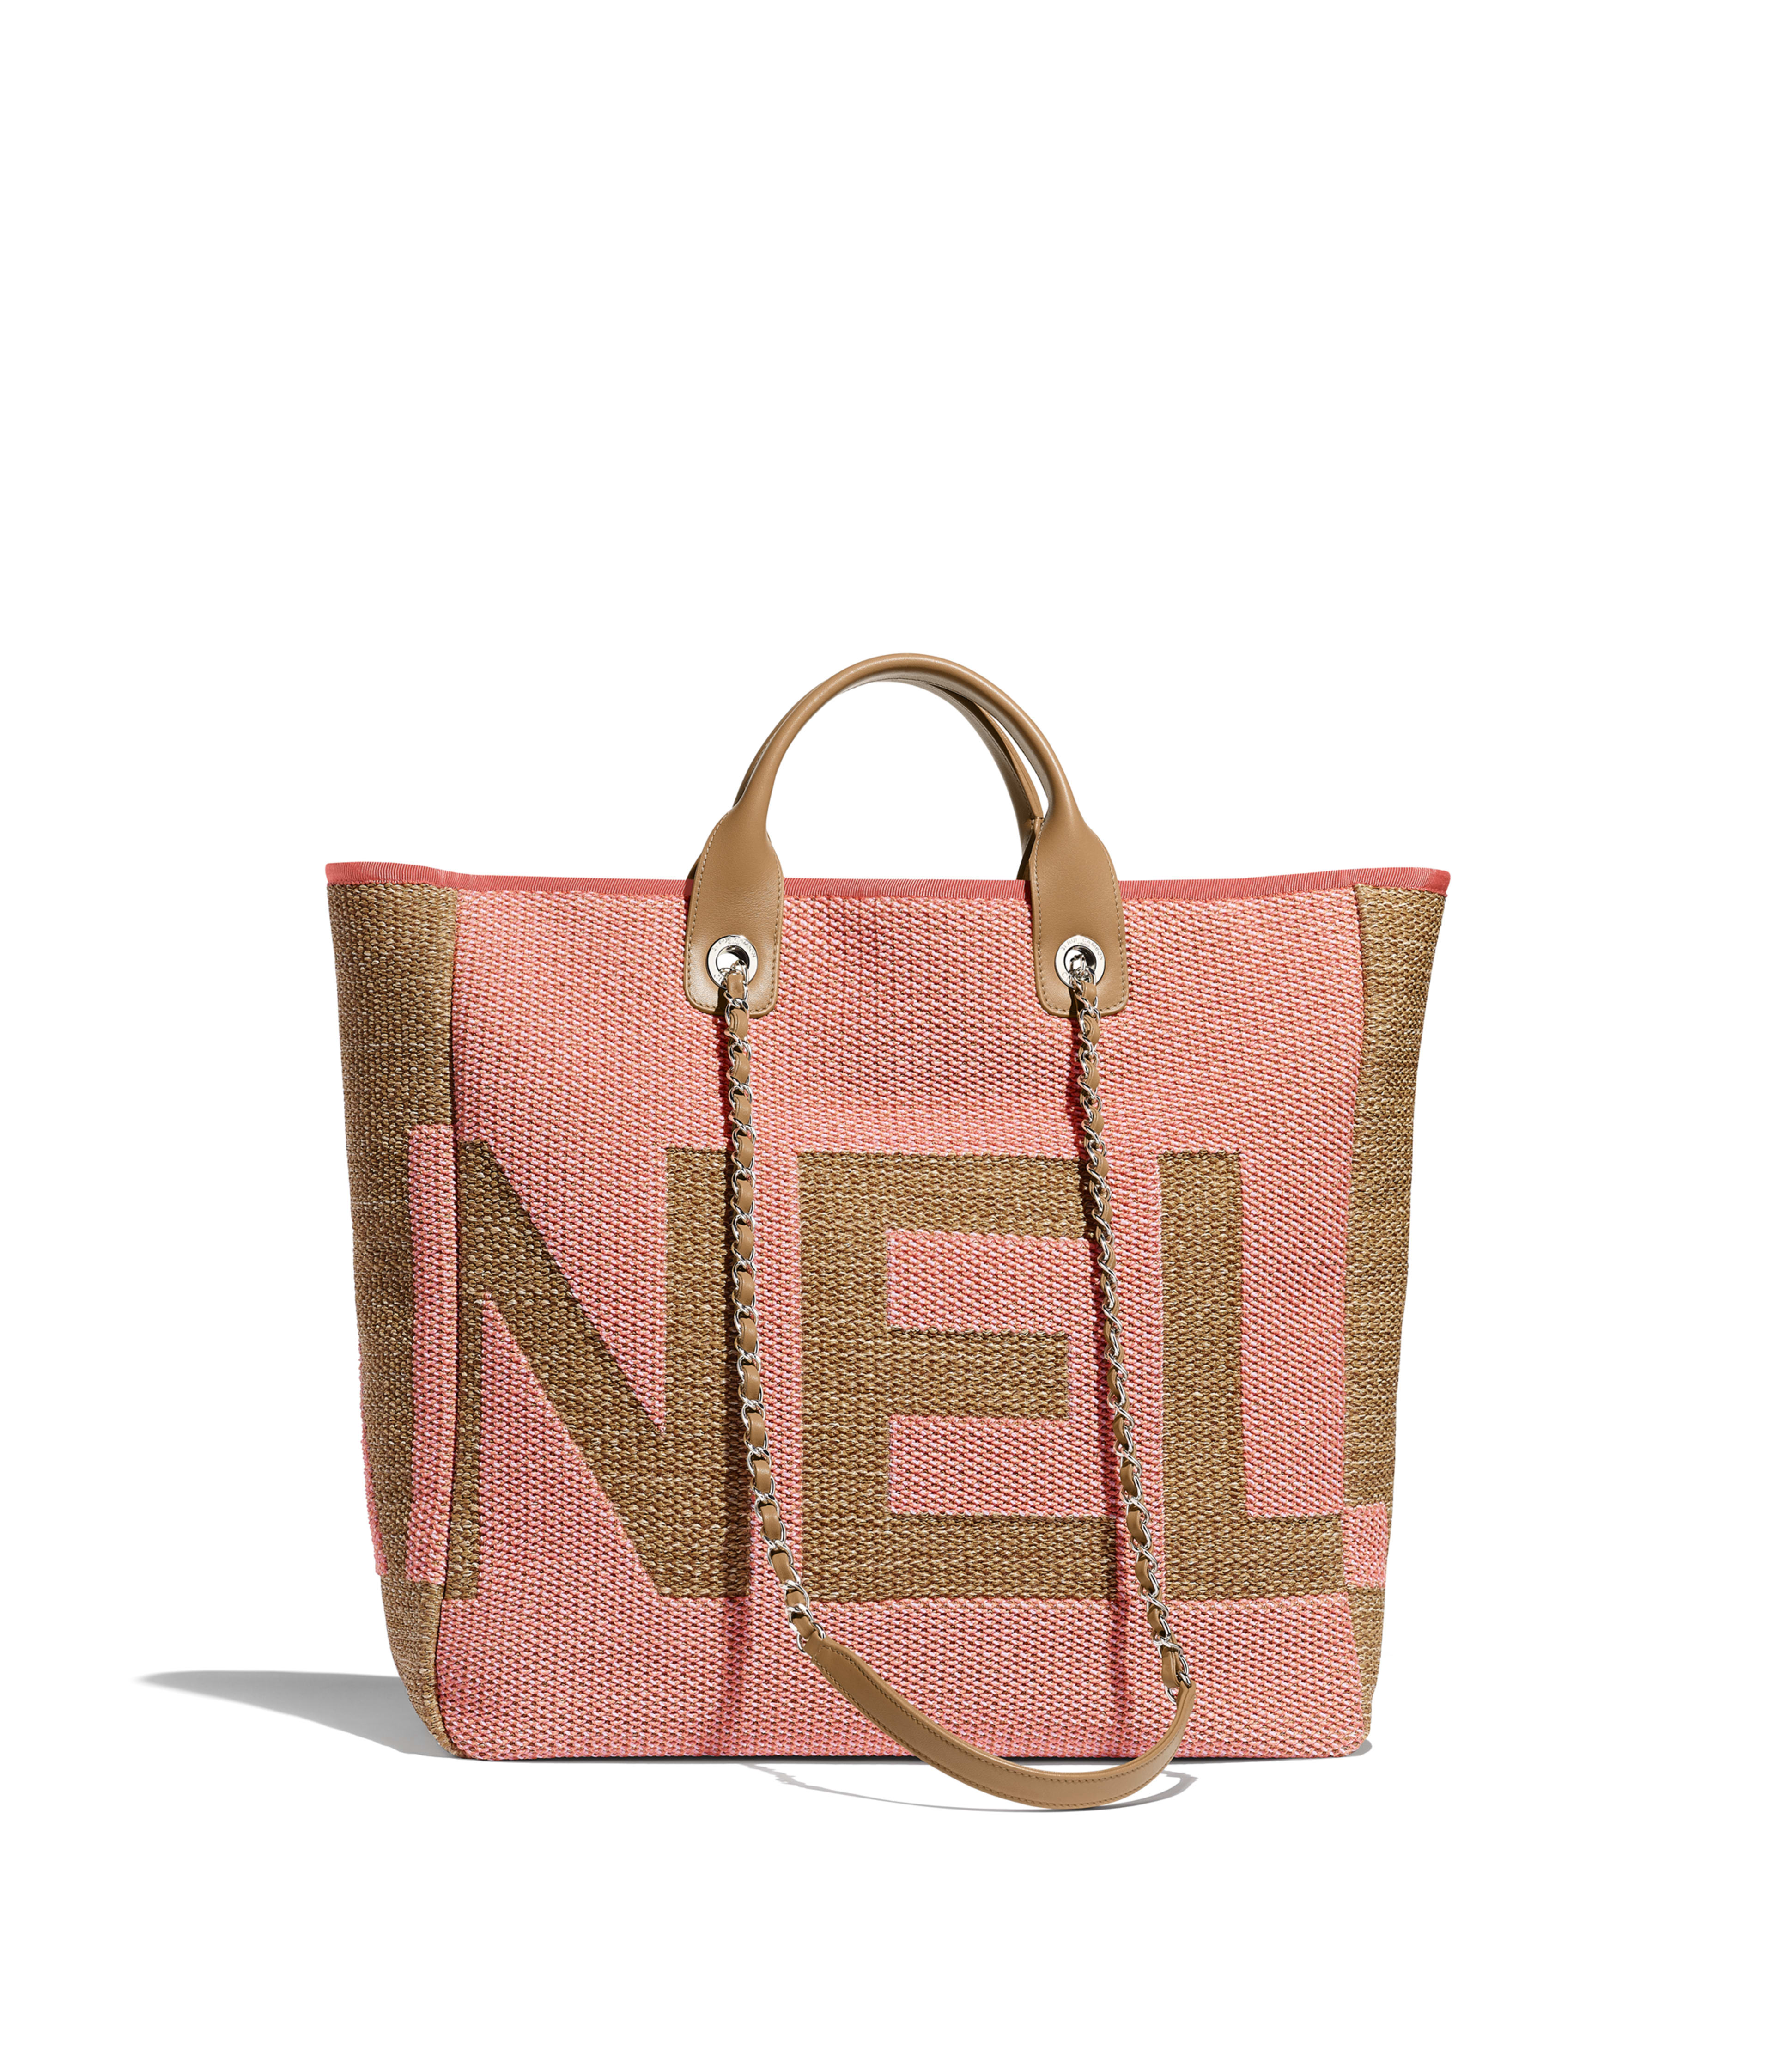 bf5b1ab5348d Large Shopping Bag Mixed Fibers, Viscose, Calfskin & Silver-Tone Metal, Dark  Pink, Pink & Beige Ref. A57161B00380N4569